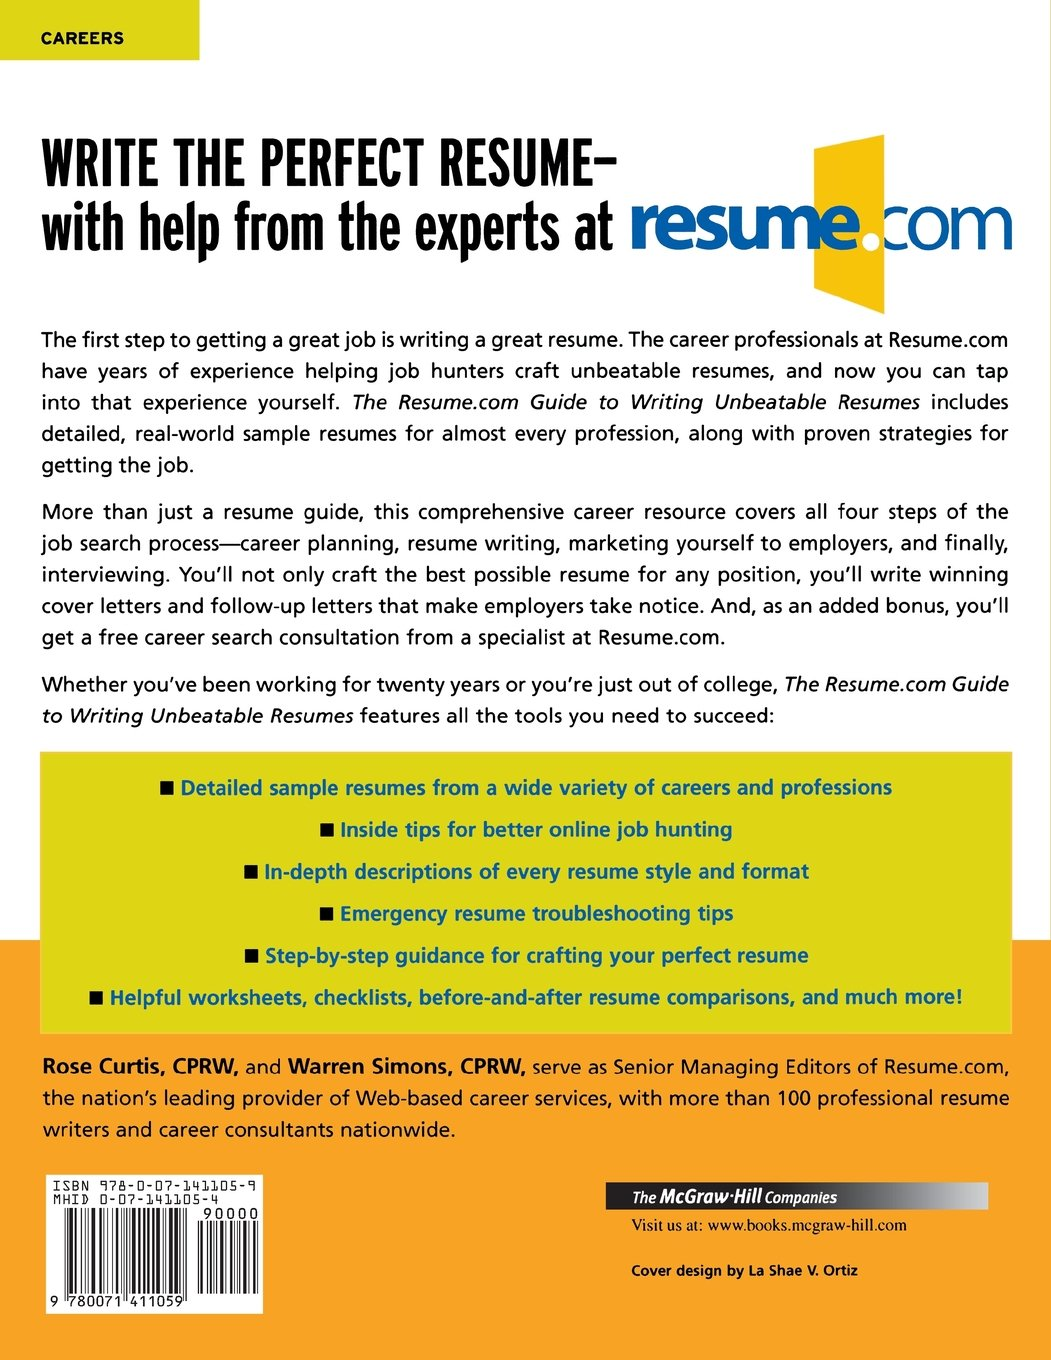 The Resume.Com Guide To Writing Unbeatable Resumes: Warren Simons, Rose  Curtis: 9780071411059: Amazon.com: Books  Resume Guide